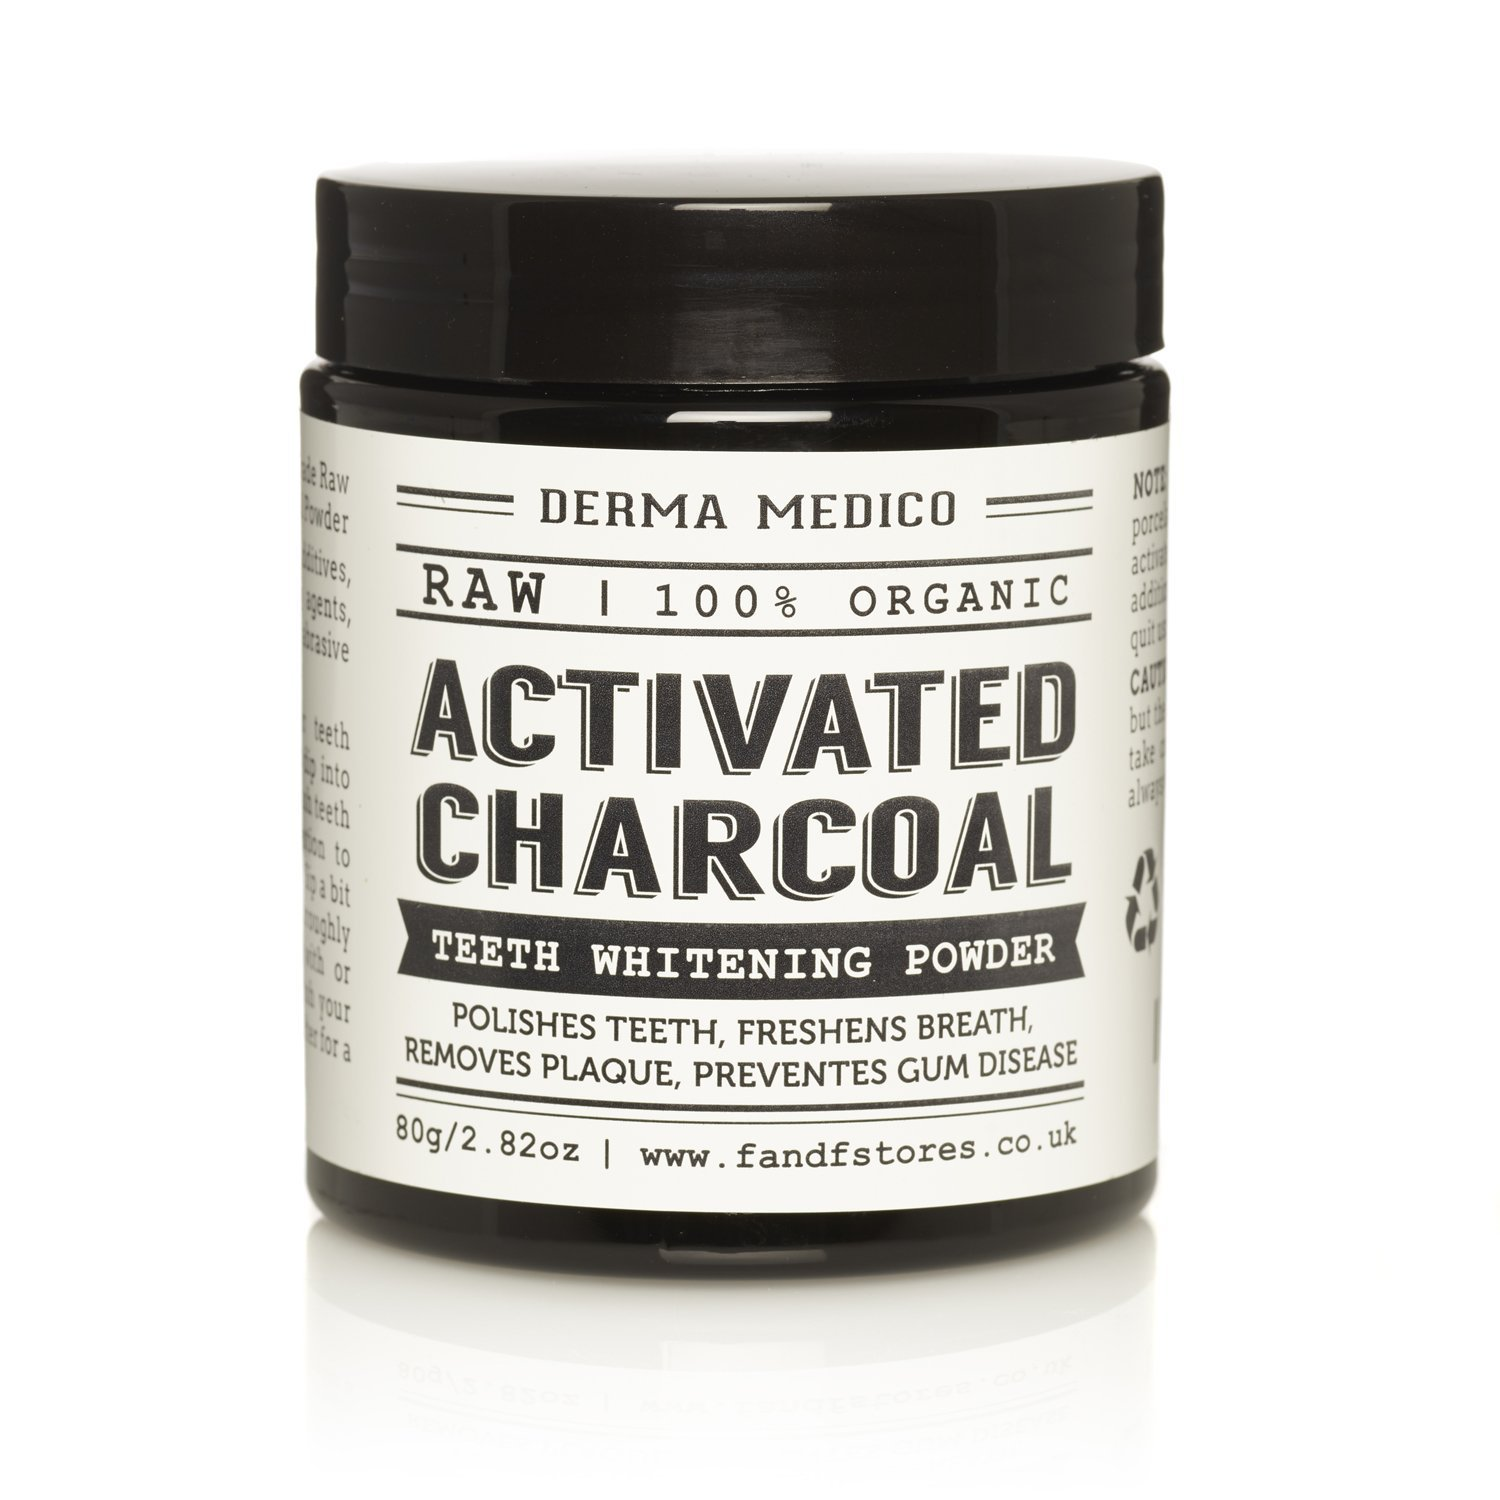 Derma Medico Activated Charcoal Teeth Whitening Powder Raw Coconut Shell by Derma Medico | Polishes Teeth | Freshens Breath | Removes Plaque |